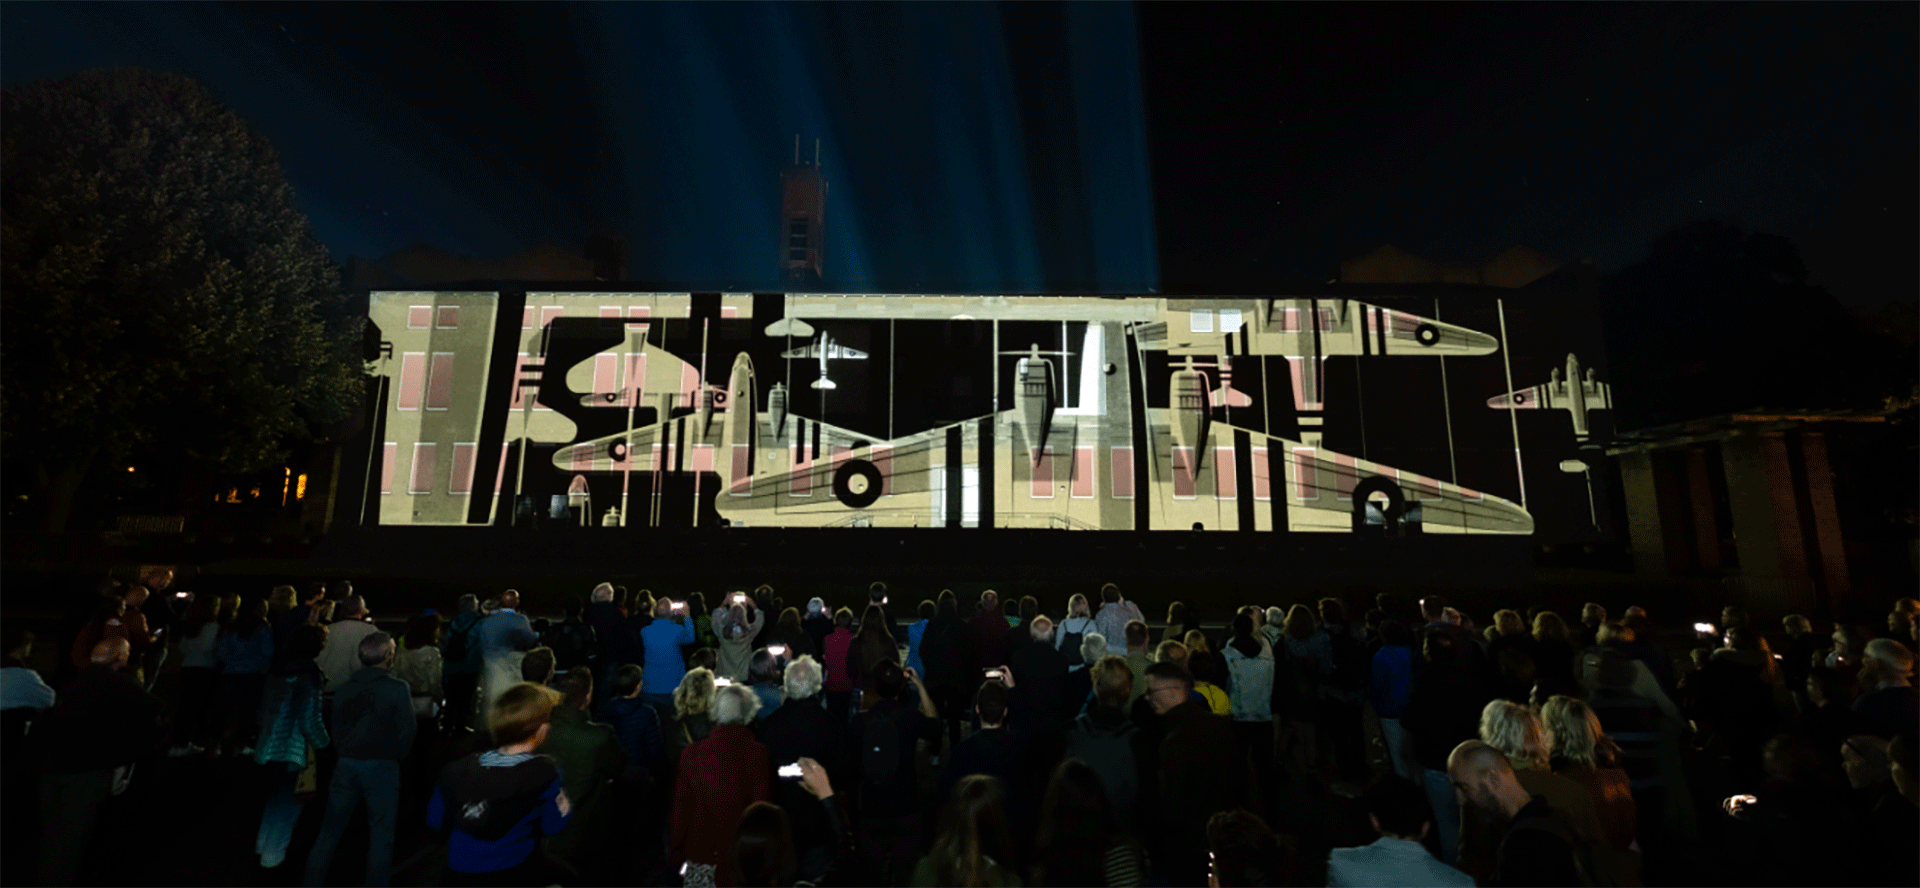 projection mapping airborne